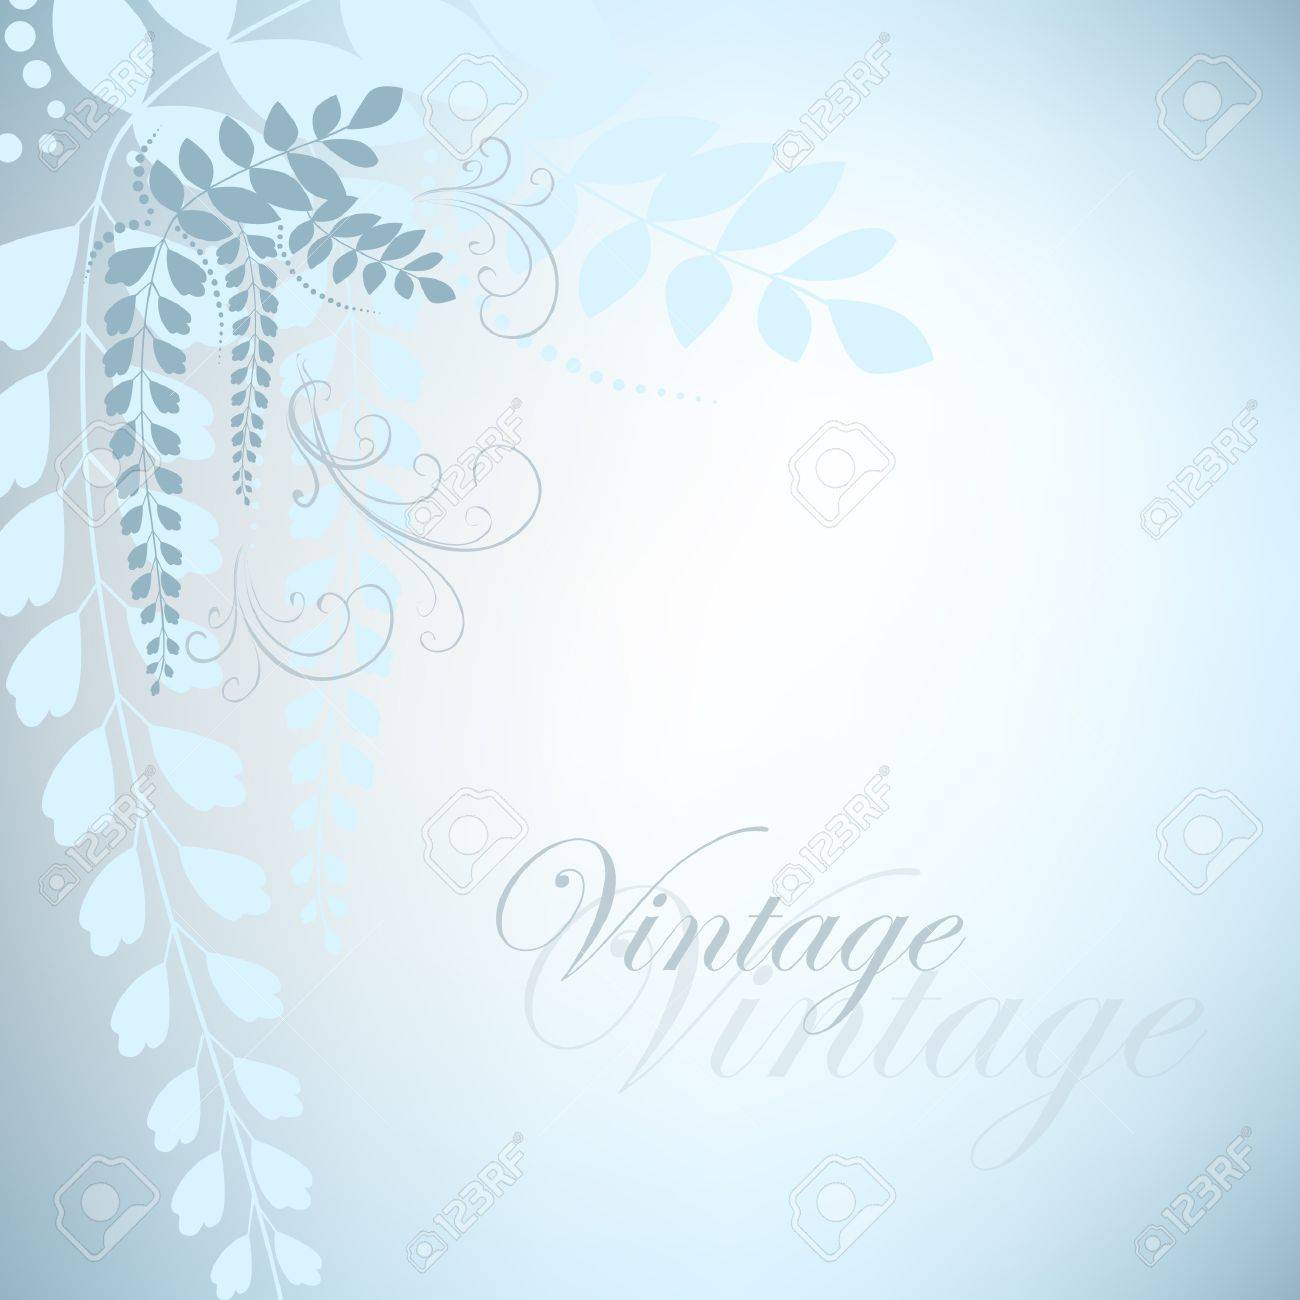 Blue vintage with acacia flowers Stock Vector - 16429454